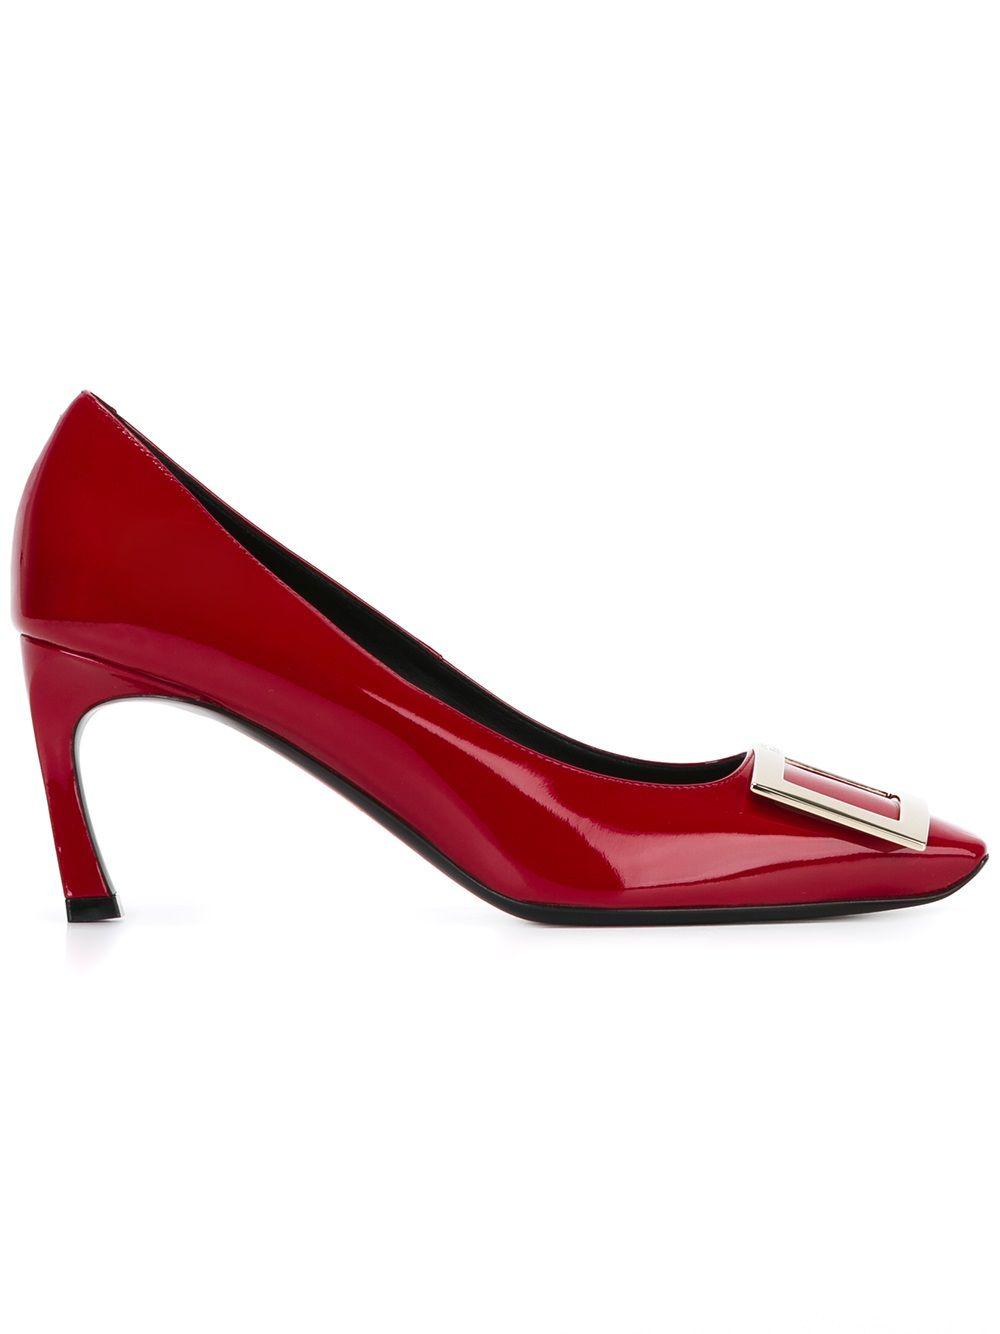 Trompette Patent Leather Pumps